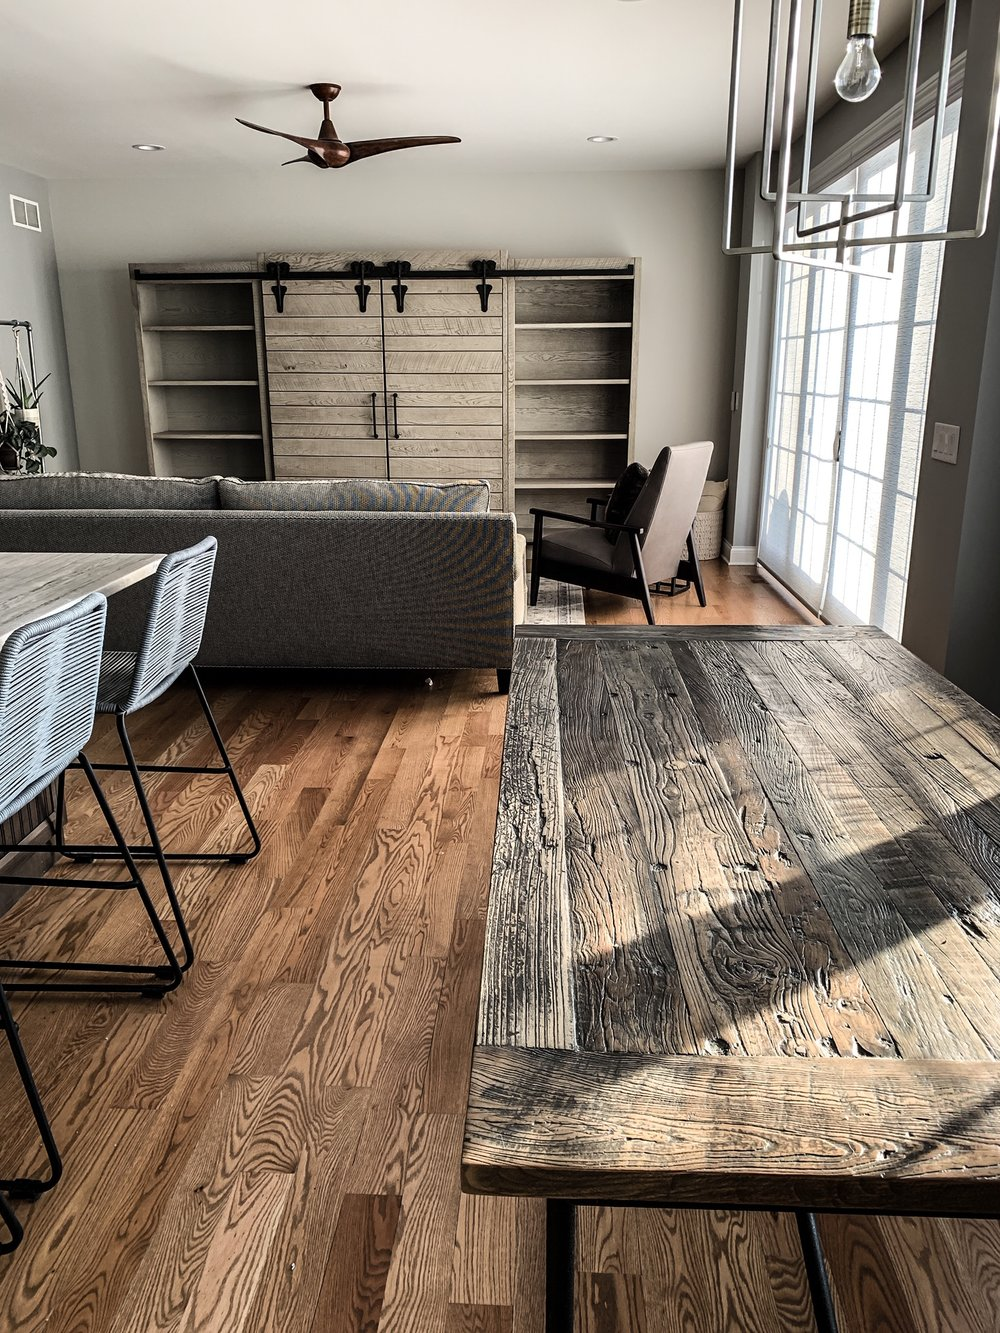 Ideas for home furnishings. Living room home decor ideas. How to makeover your living room. How To Shop For Furniture Like You Mean It